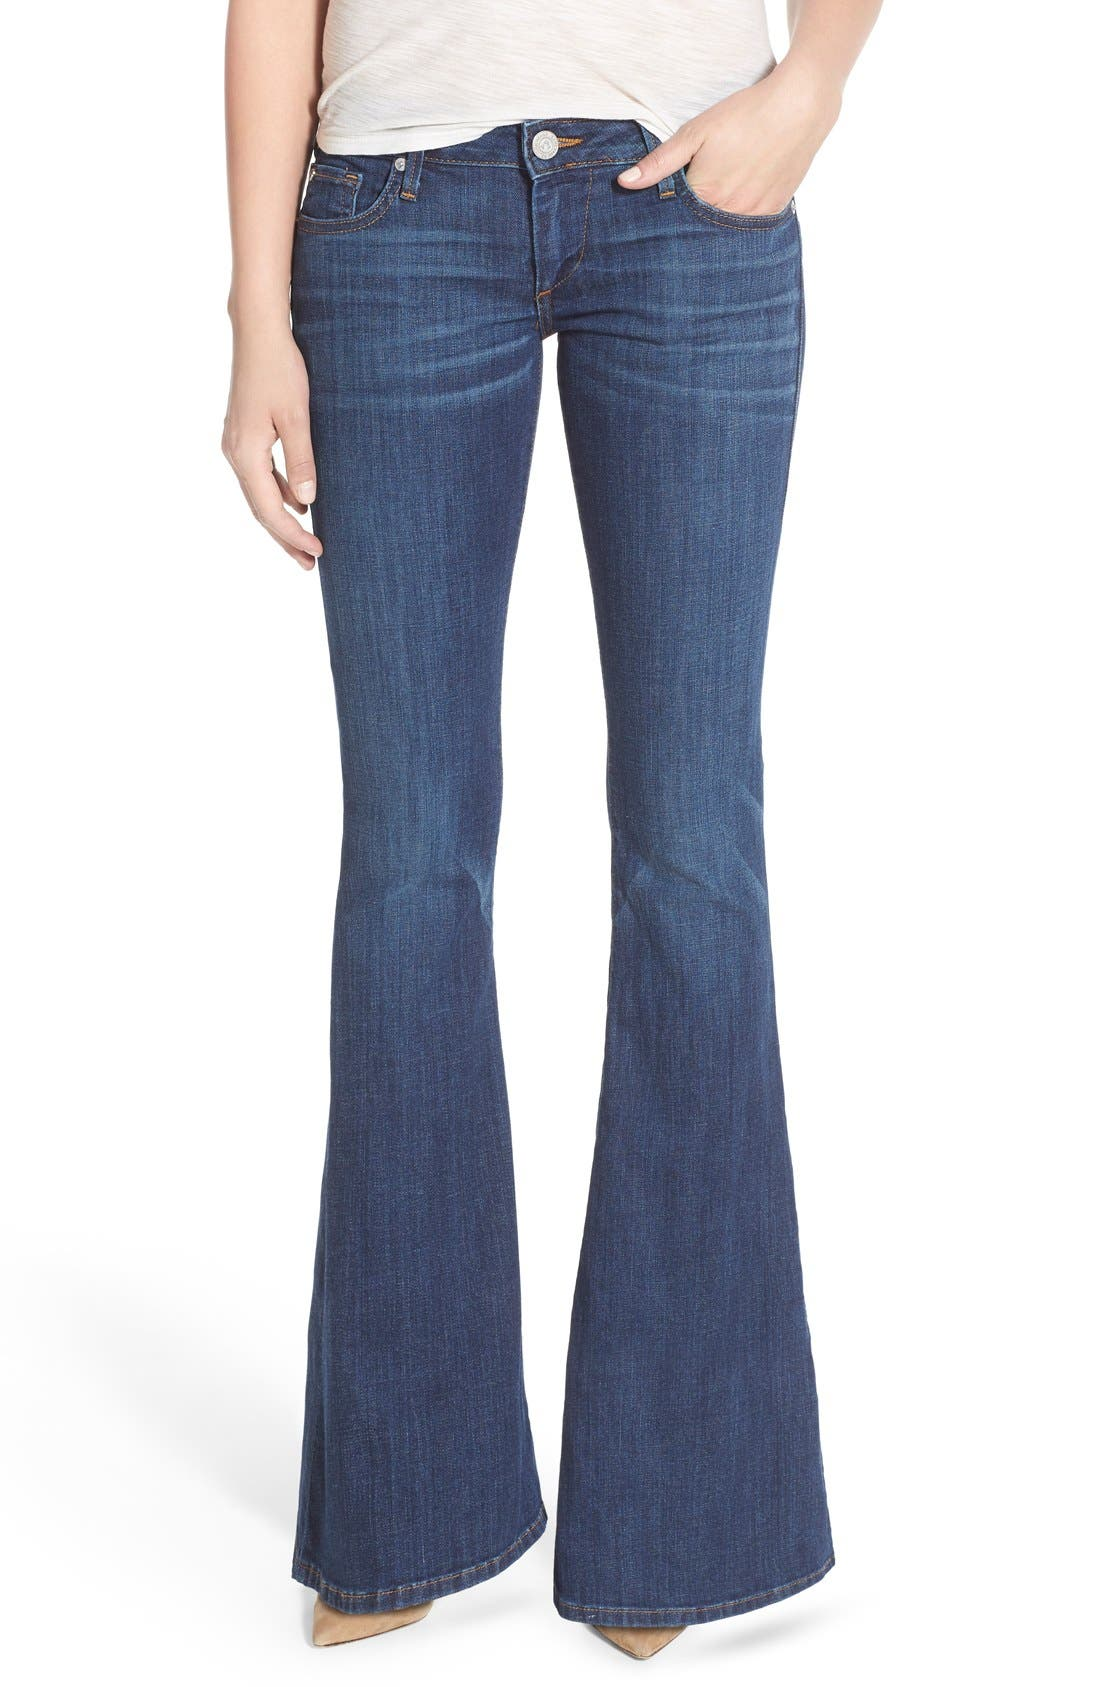 Main Image - True Religion Brand Jeans 'Karlie' Bell Bottom Jeans (Worn Vintage)